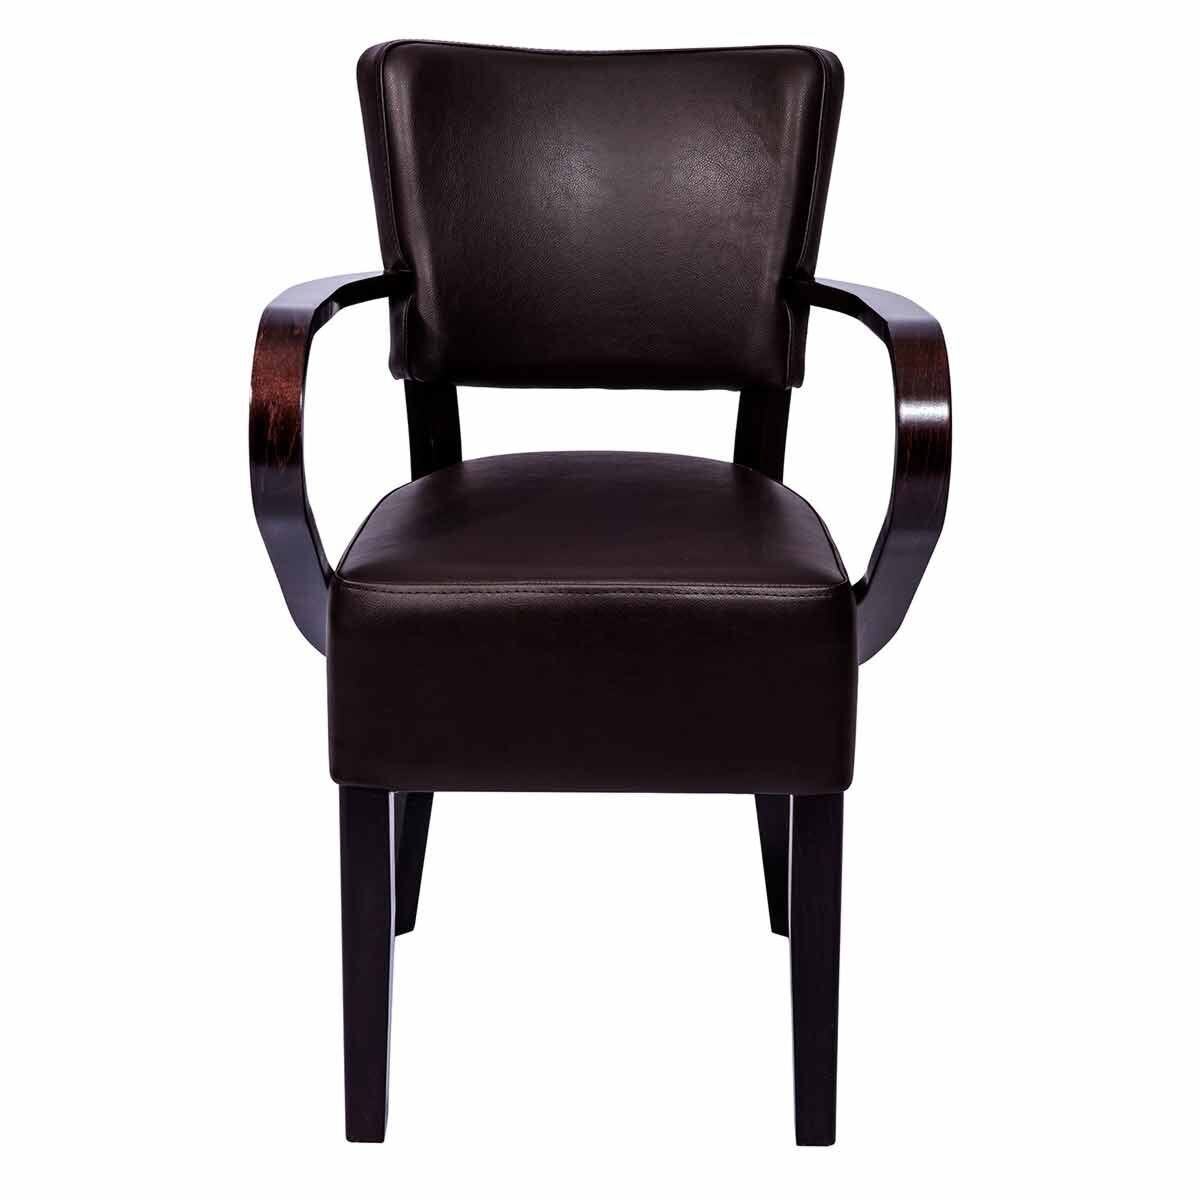 Tabilo Sena Faux Leather Dining Arm Chair Brown